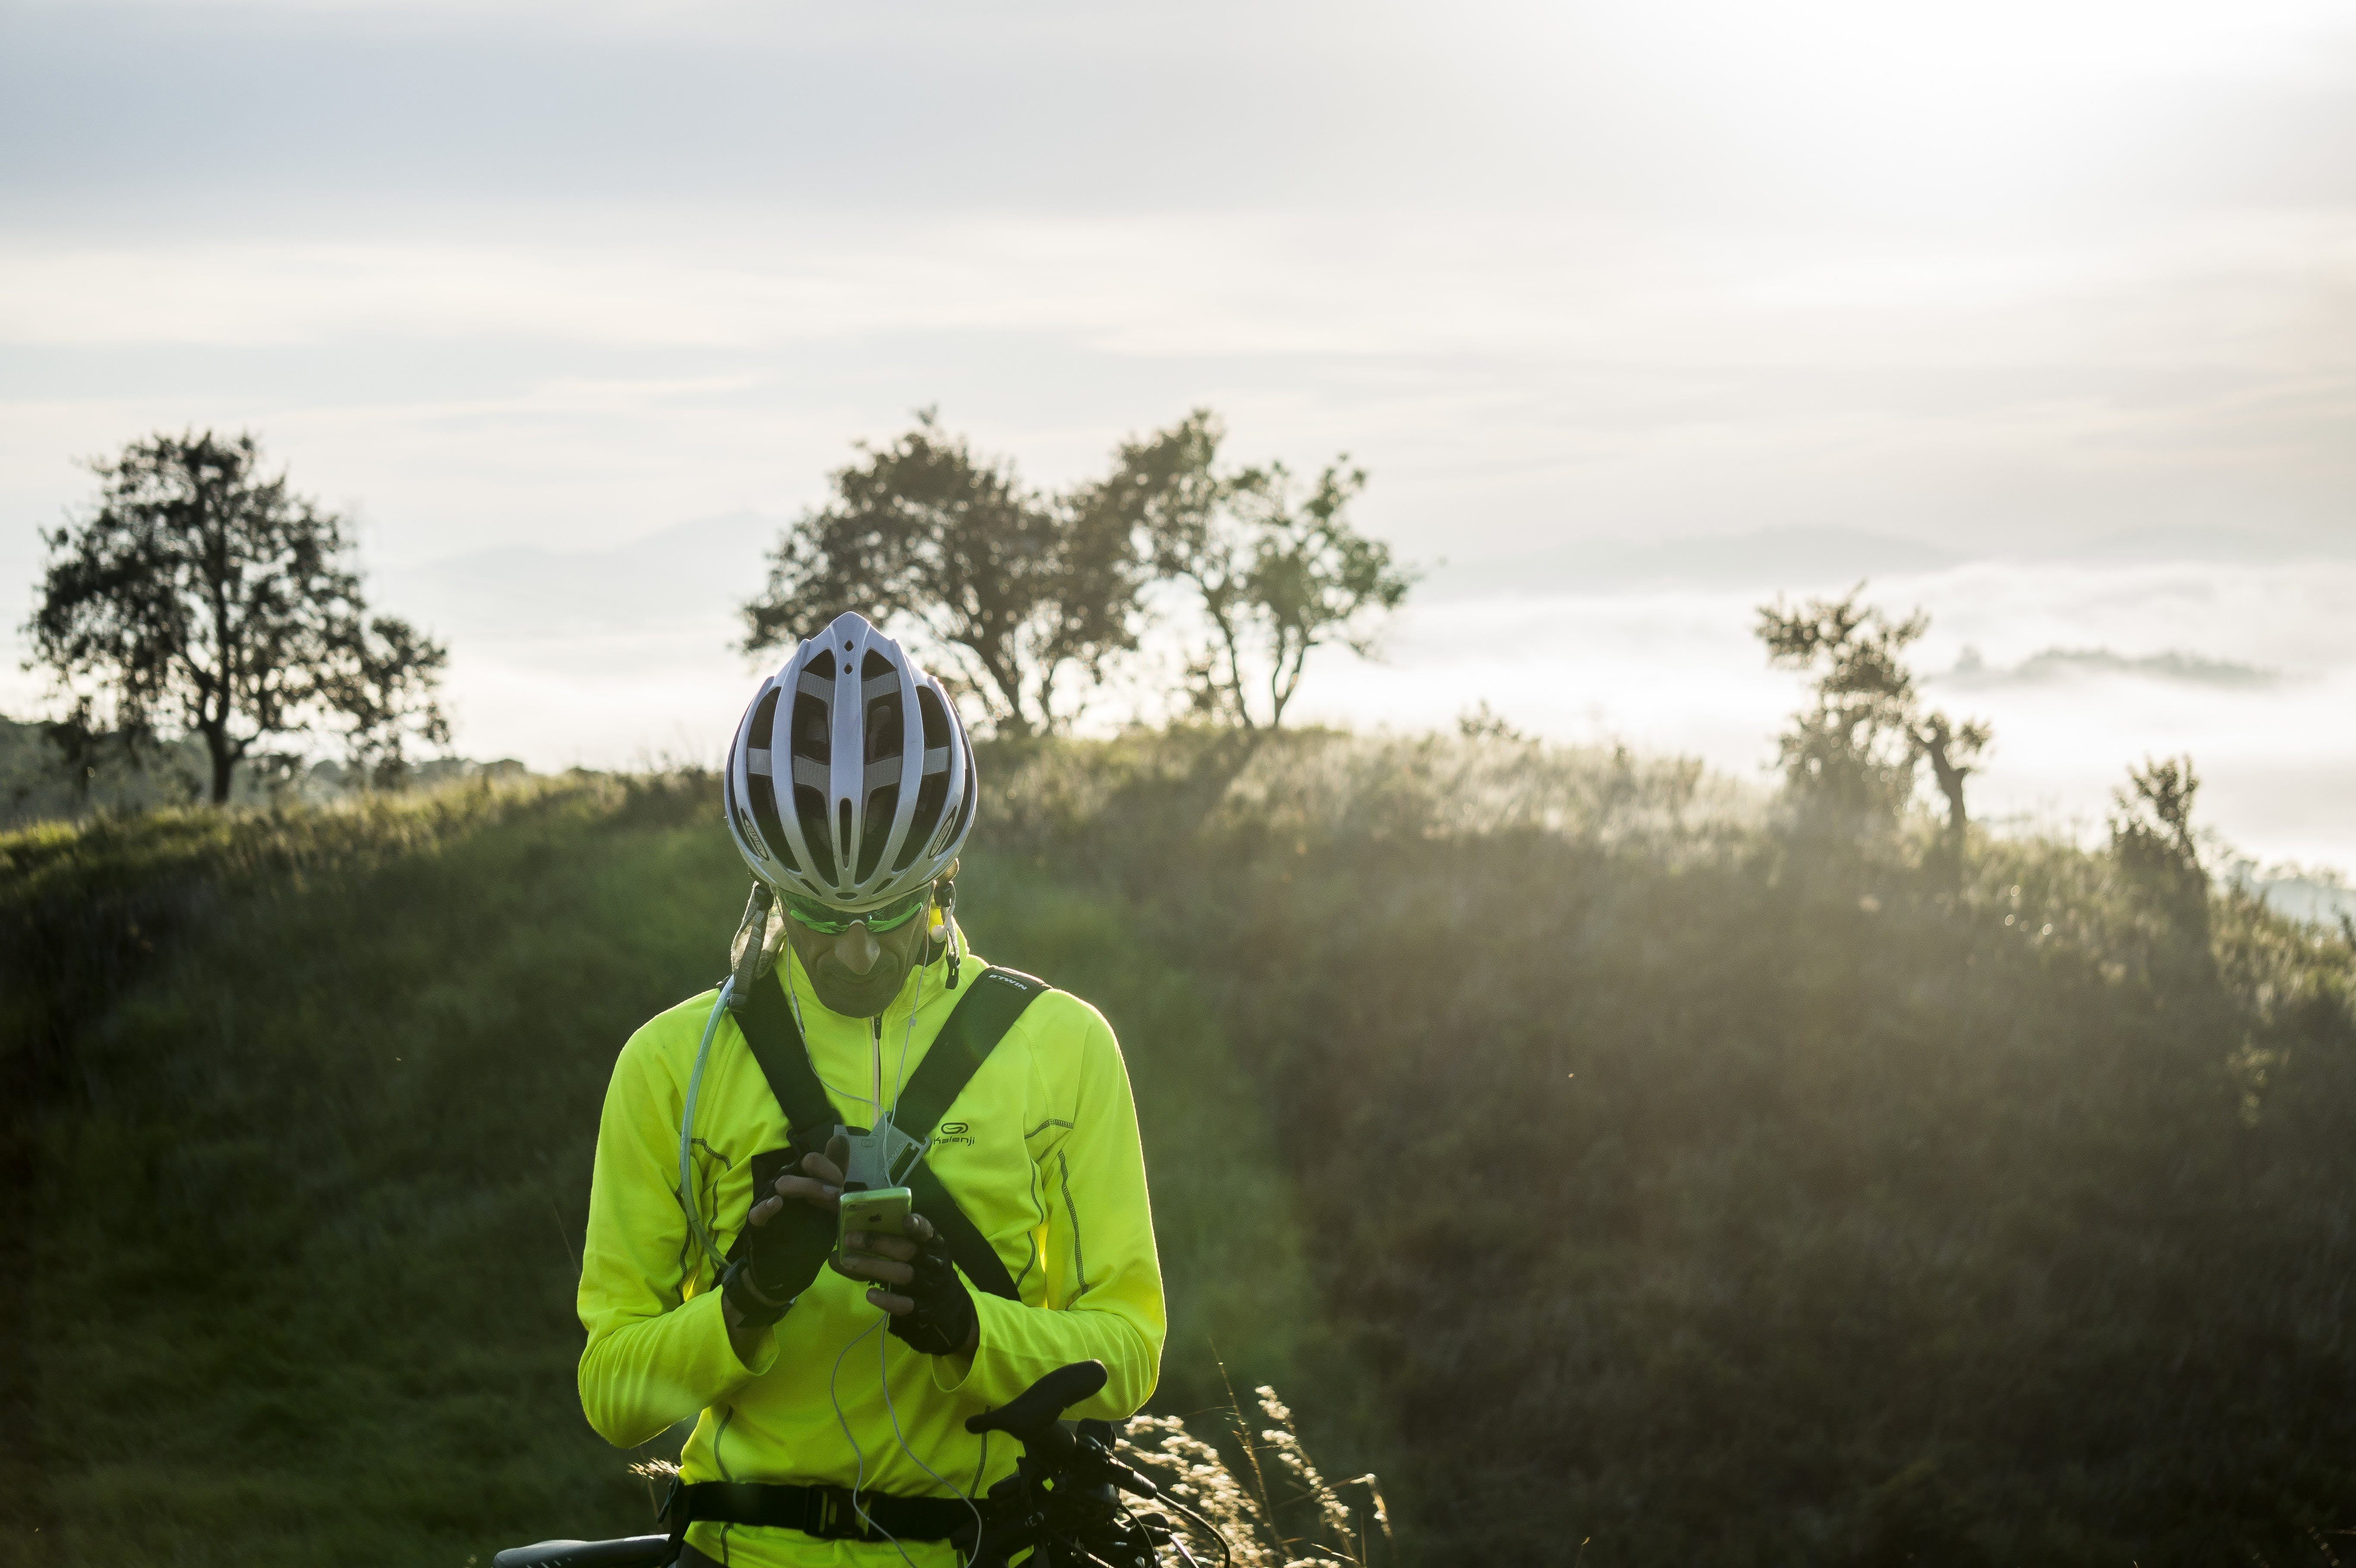 Man in Green Bicycle Suit Standing While Using His Smartphone